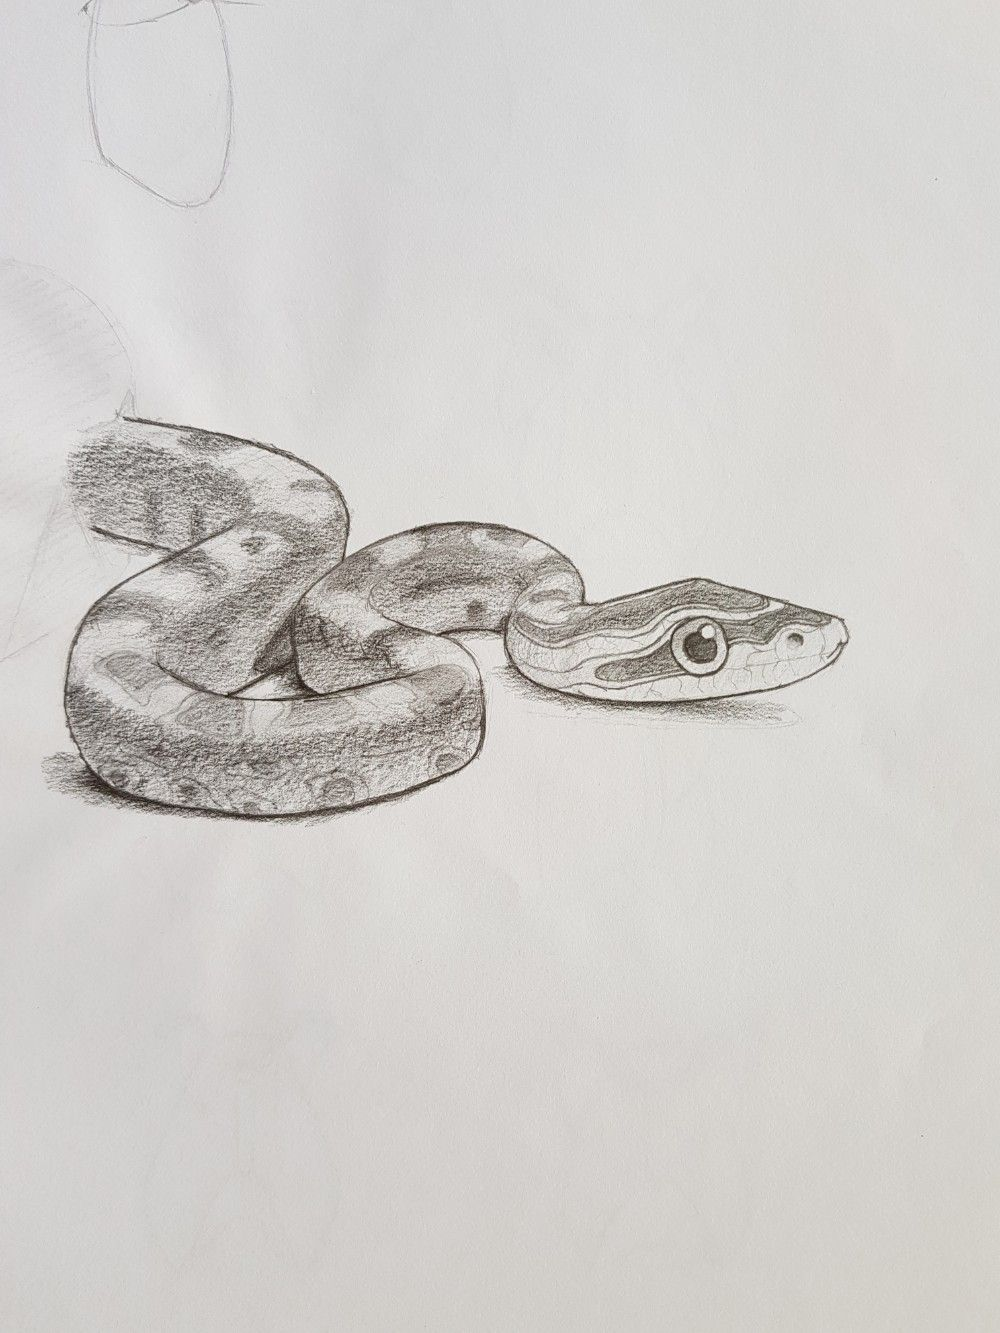 An adorable snake drawing snake drawing cool drawings pencil drawings drawing people